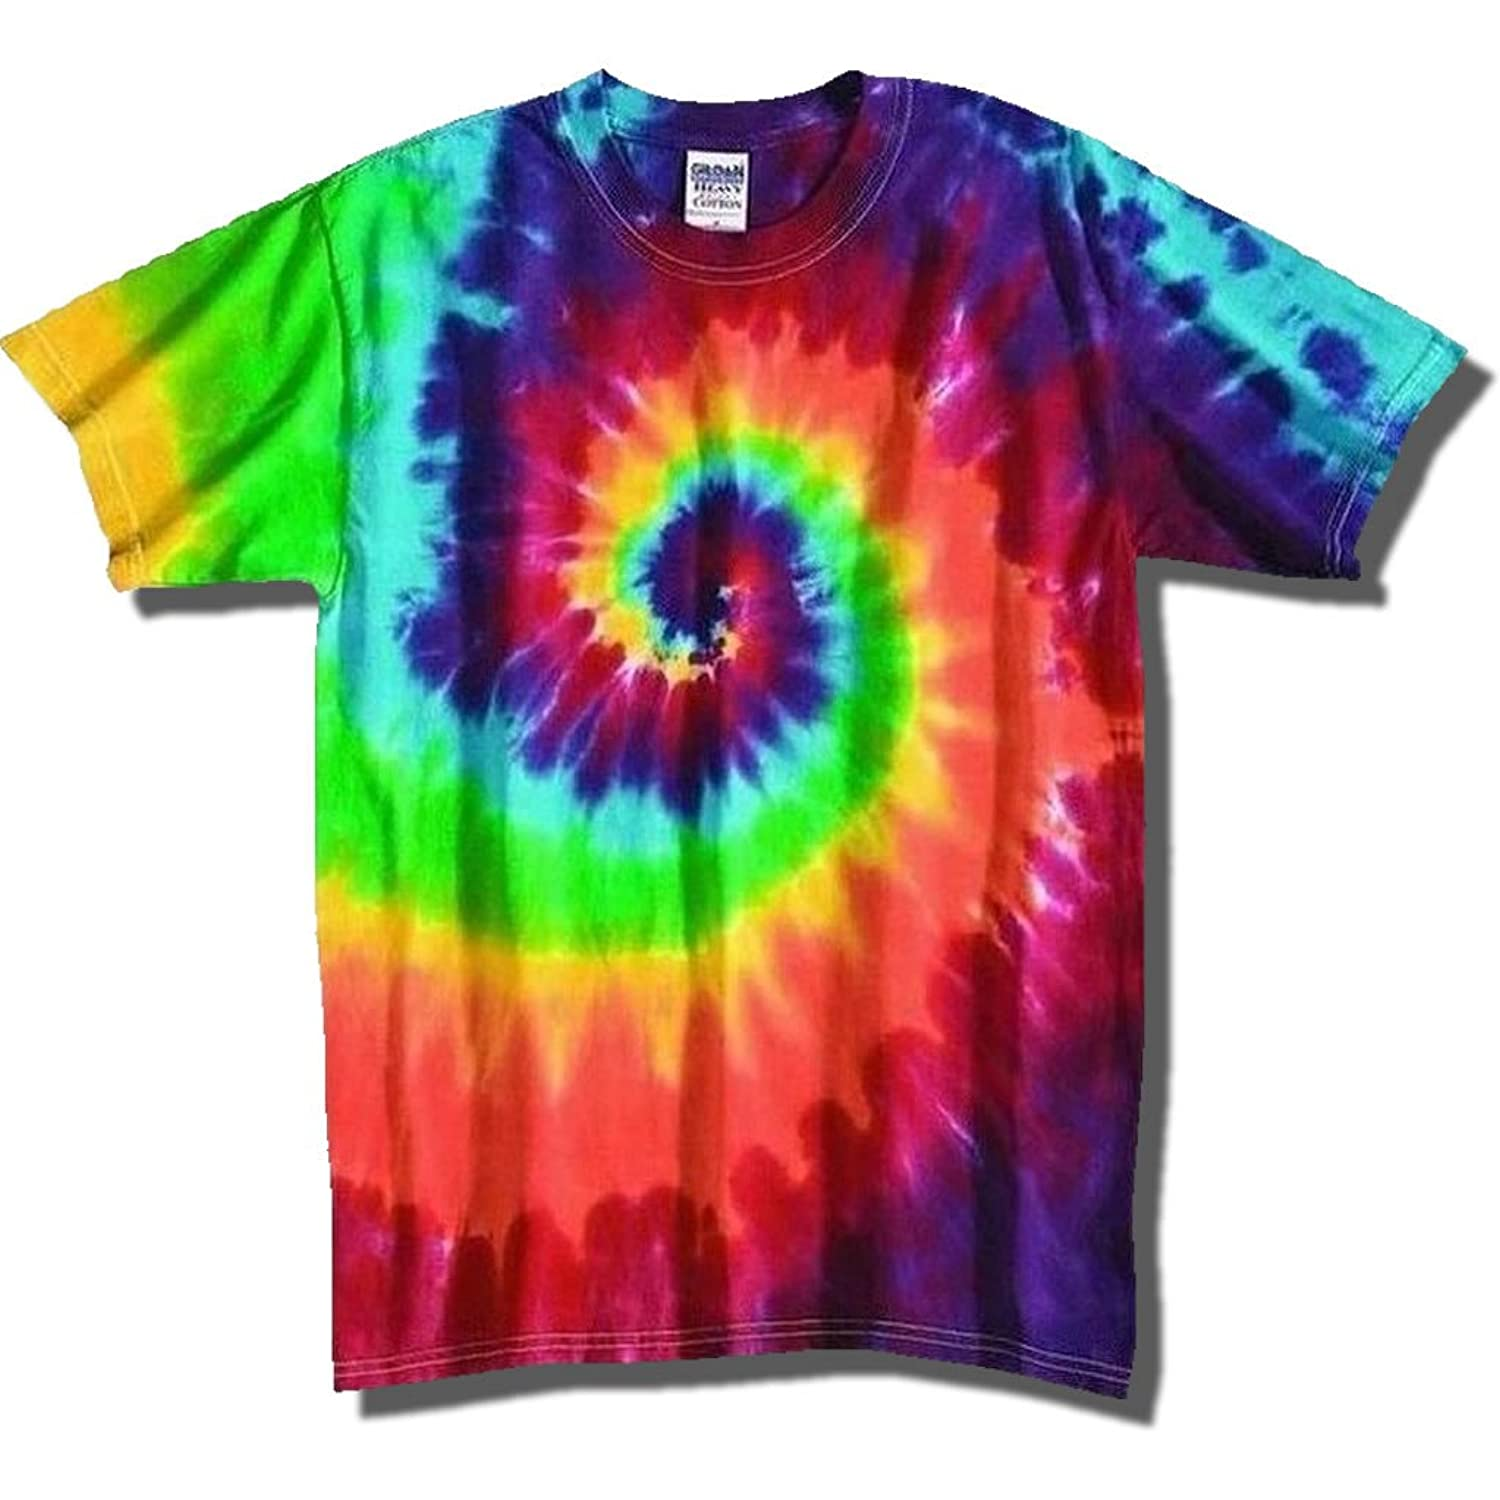 photos bild galeria how to tie dye a shirt. Black Bedroom Furniture Sets. Home Design Ideas